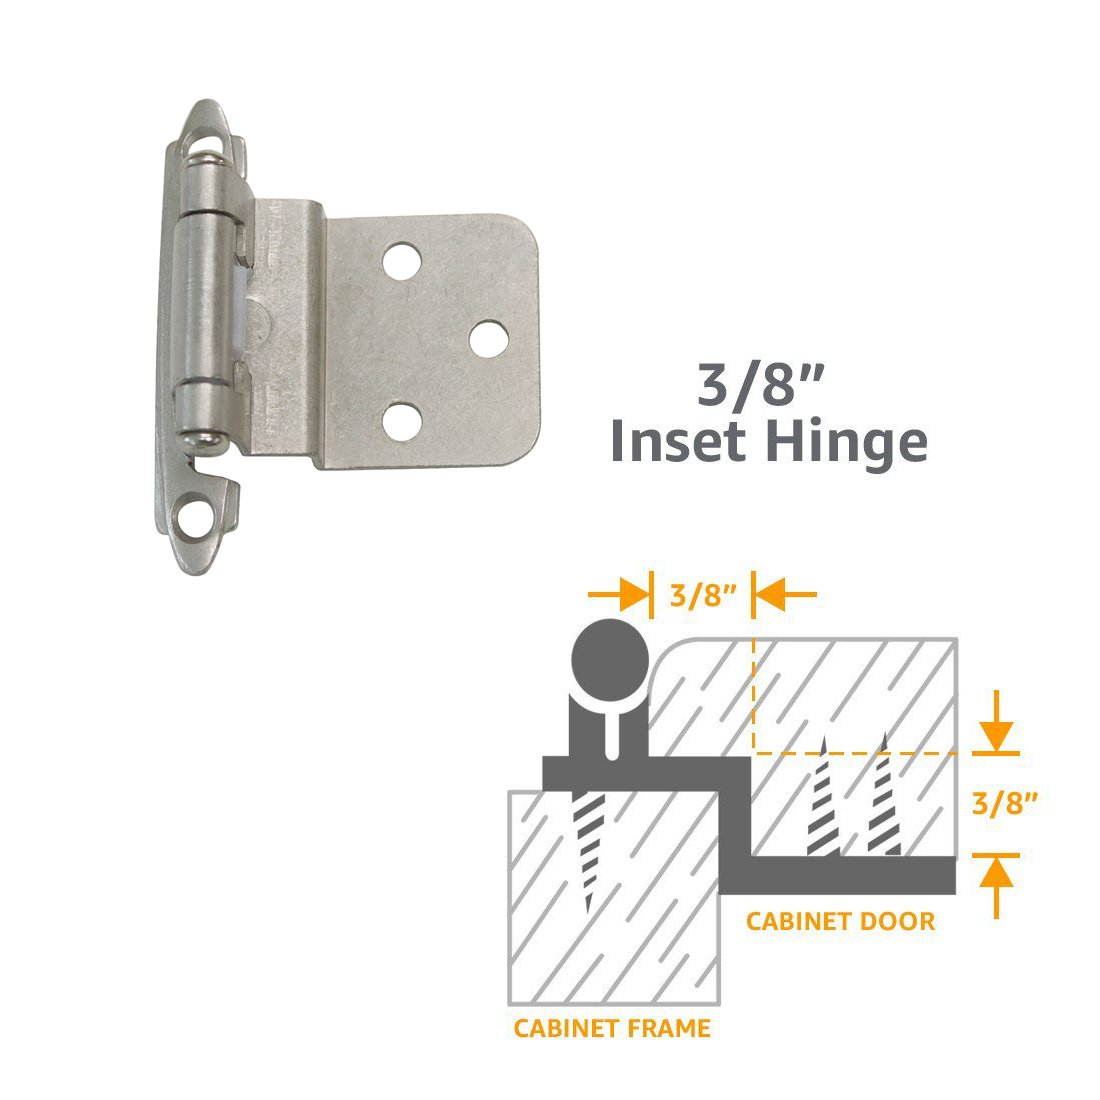 Gobrico Brushed Satin Nickel Self Closing Cabinet Ktichen Cupboard Hinges 3/8'' Inset 50Pair-100Pcs Pack